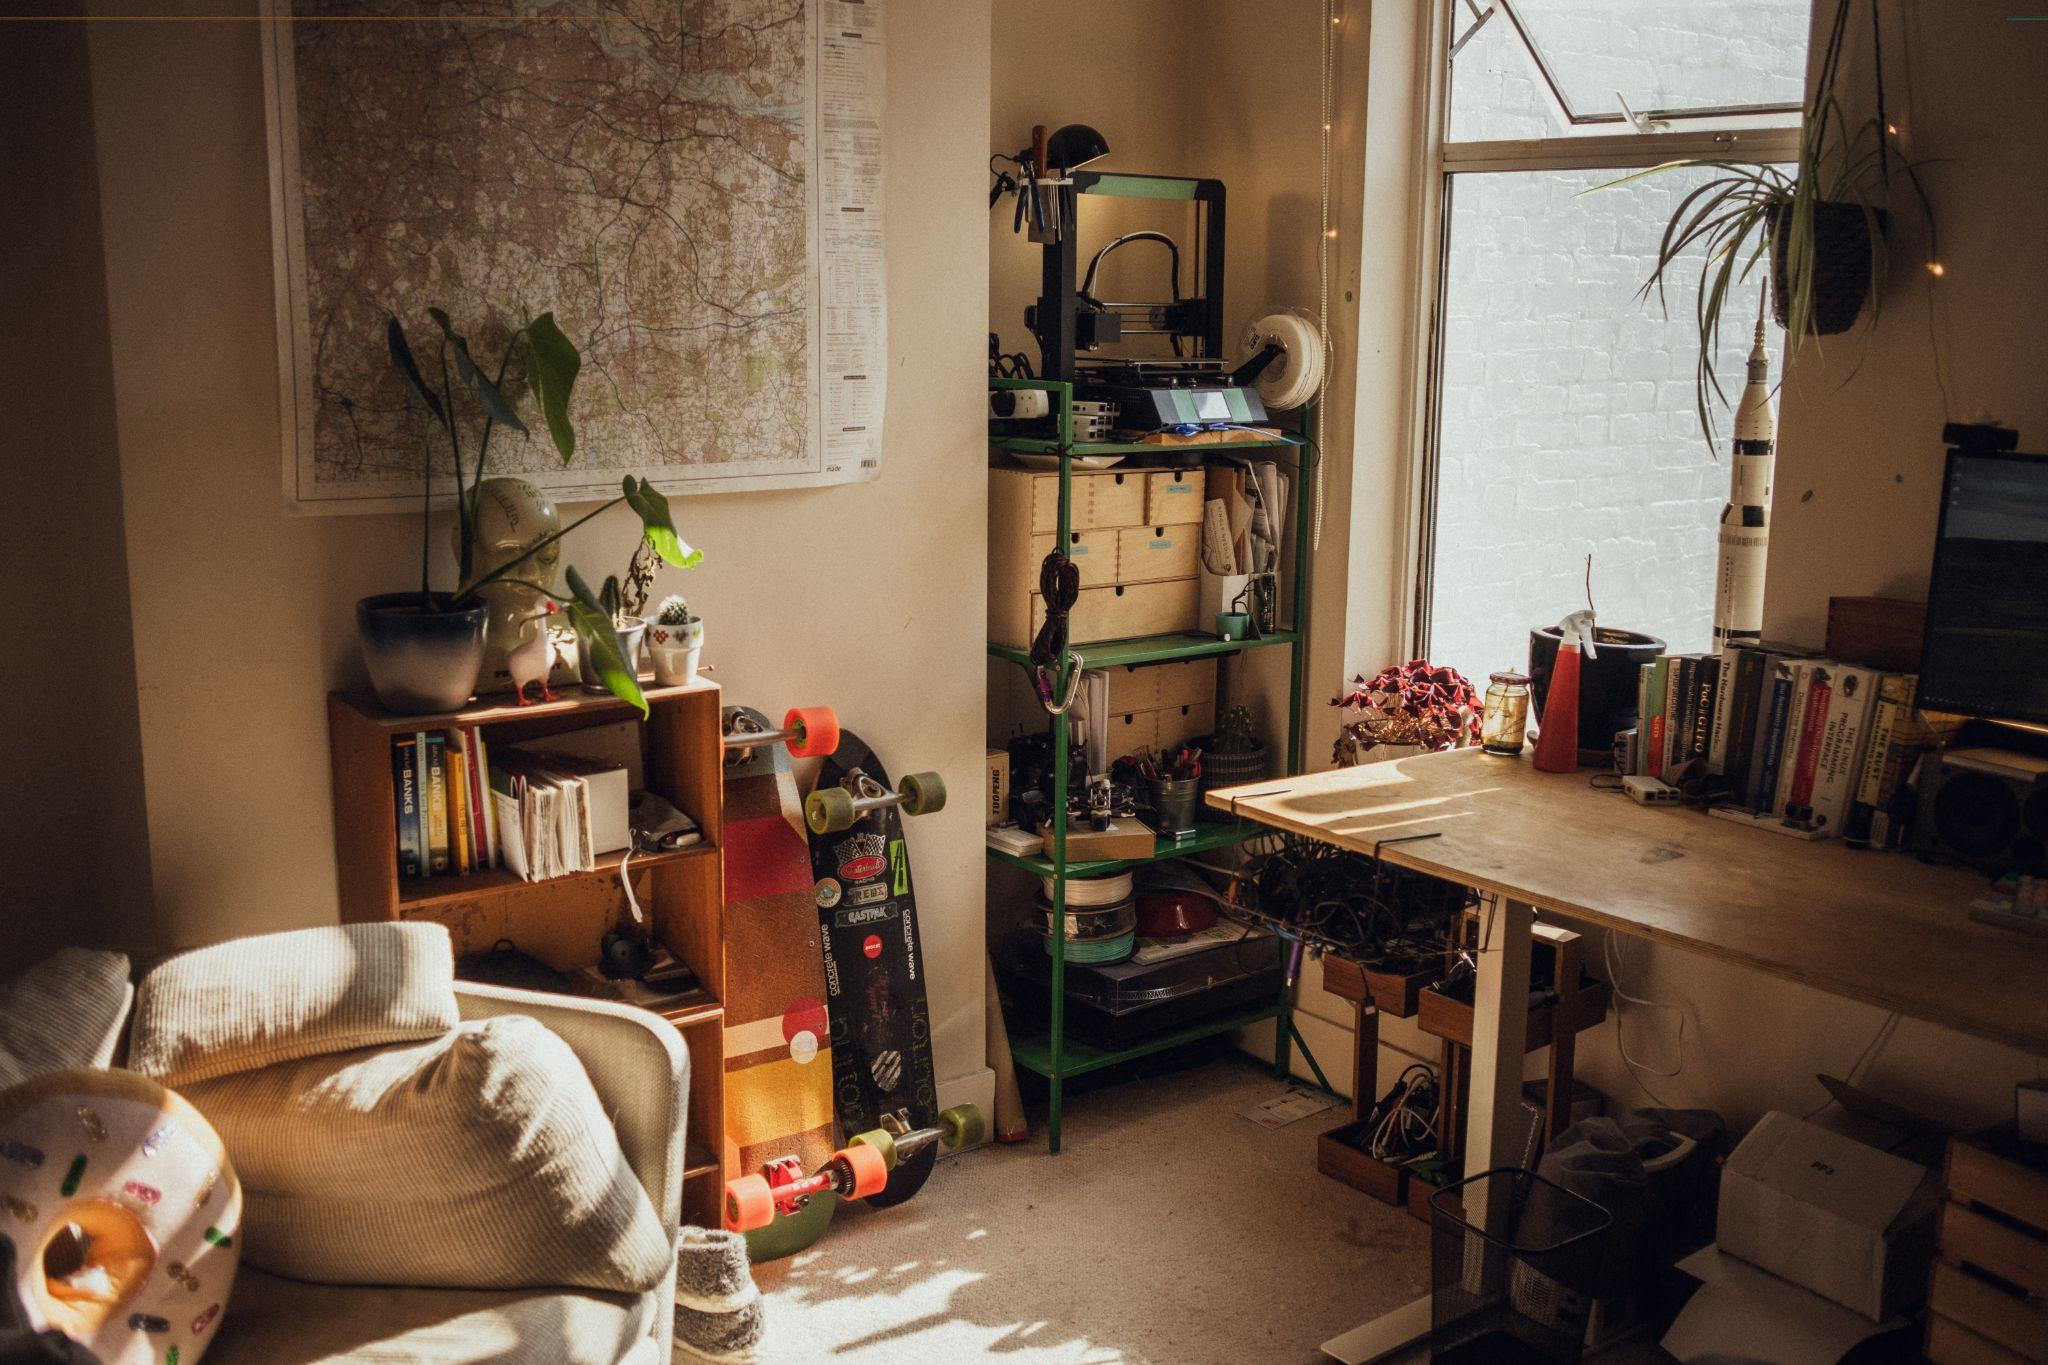 9 Steps to Cleaning Up a Cluttered Living Space